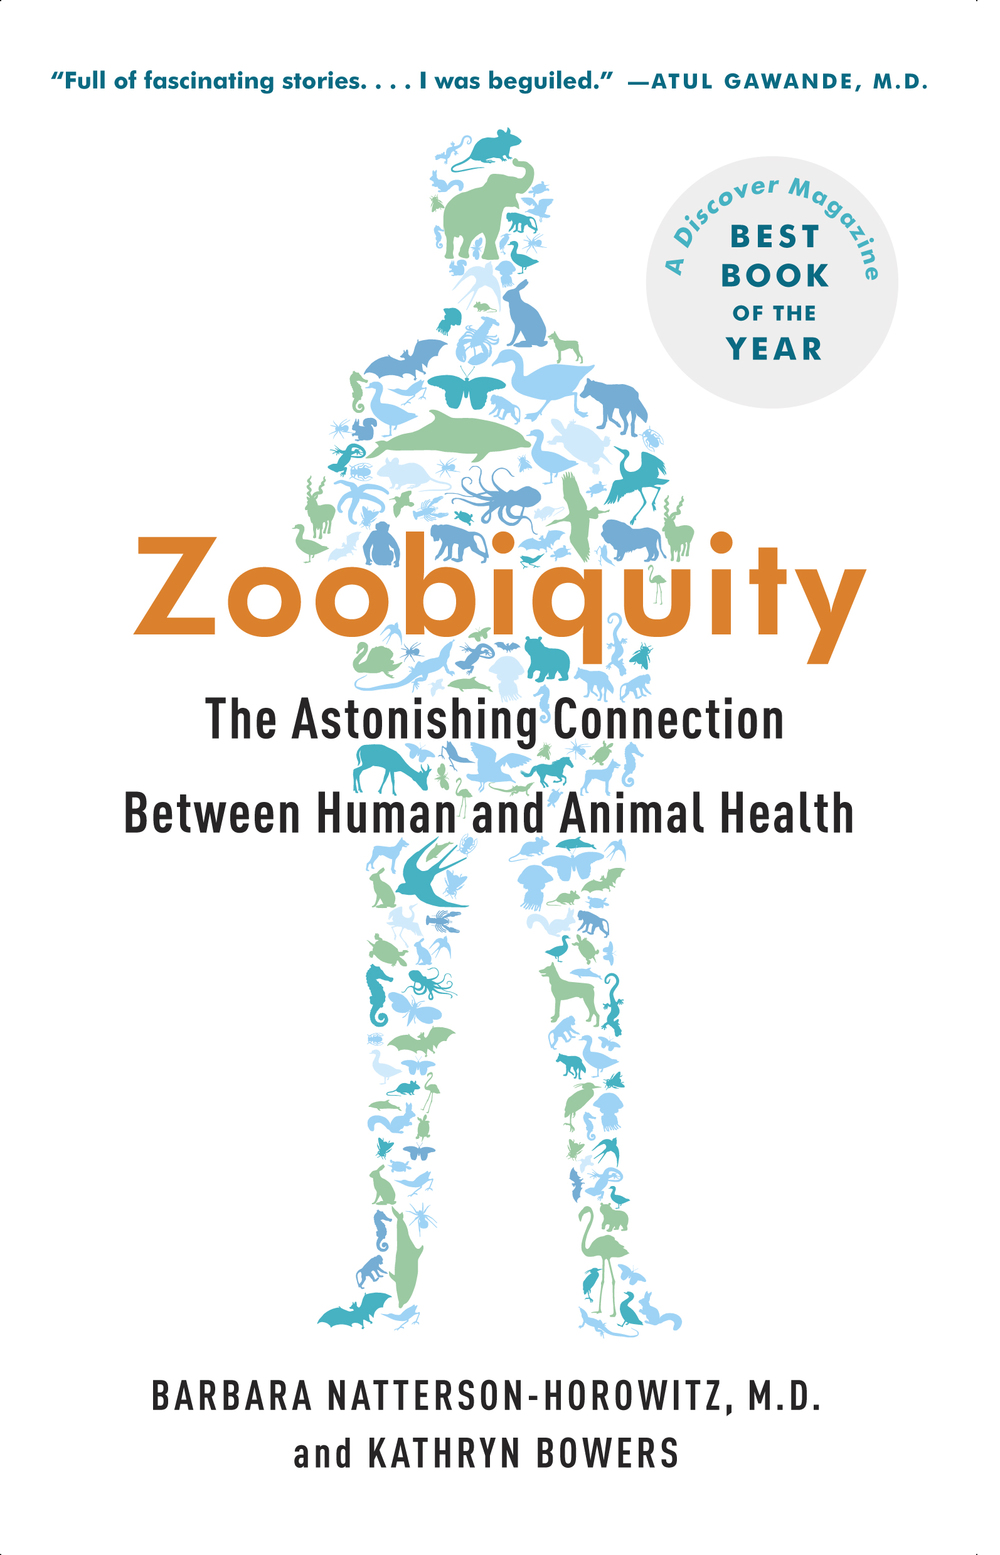 Zoobiquity_Paperback_CoverArt_HighResolution.jpg